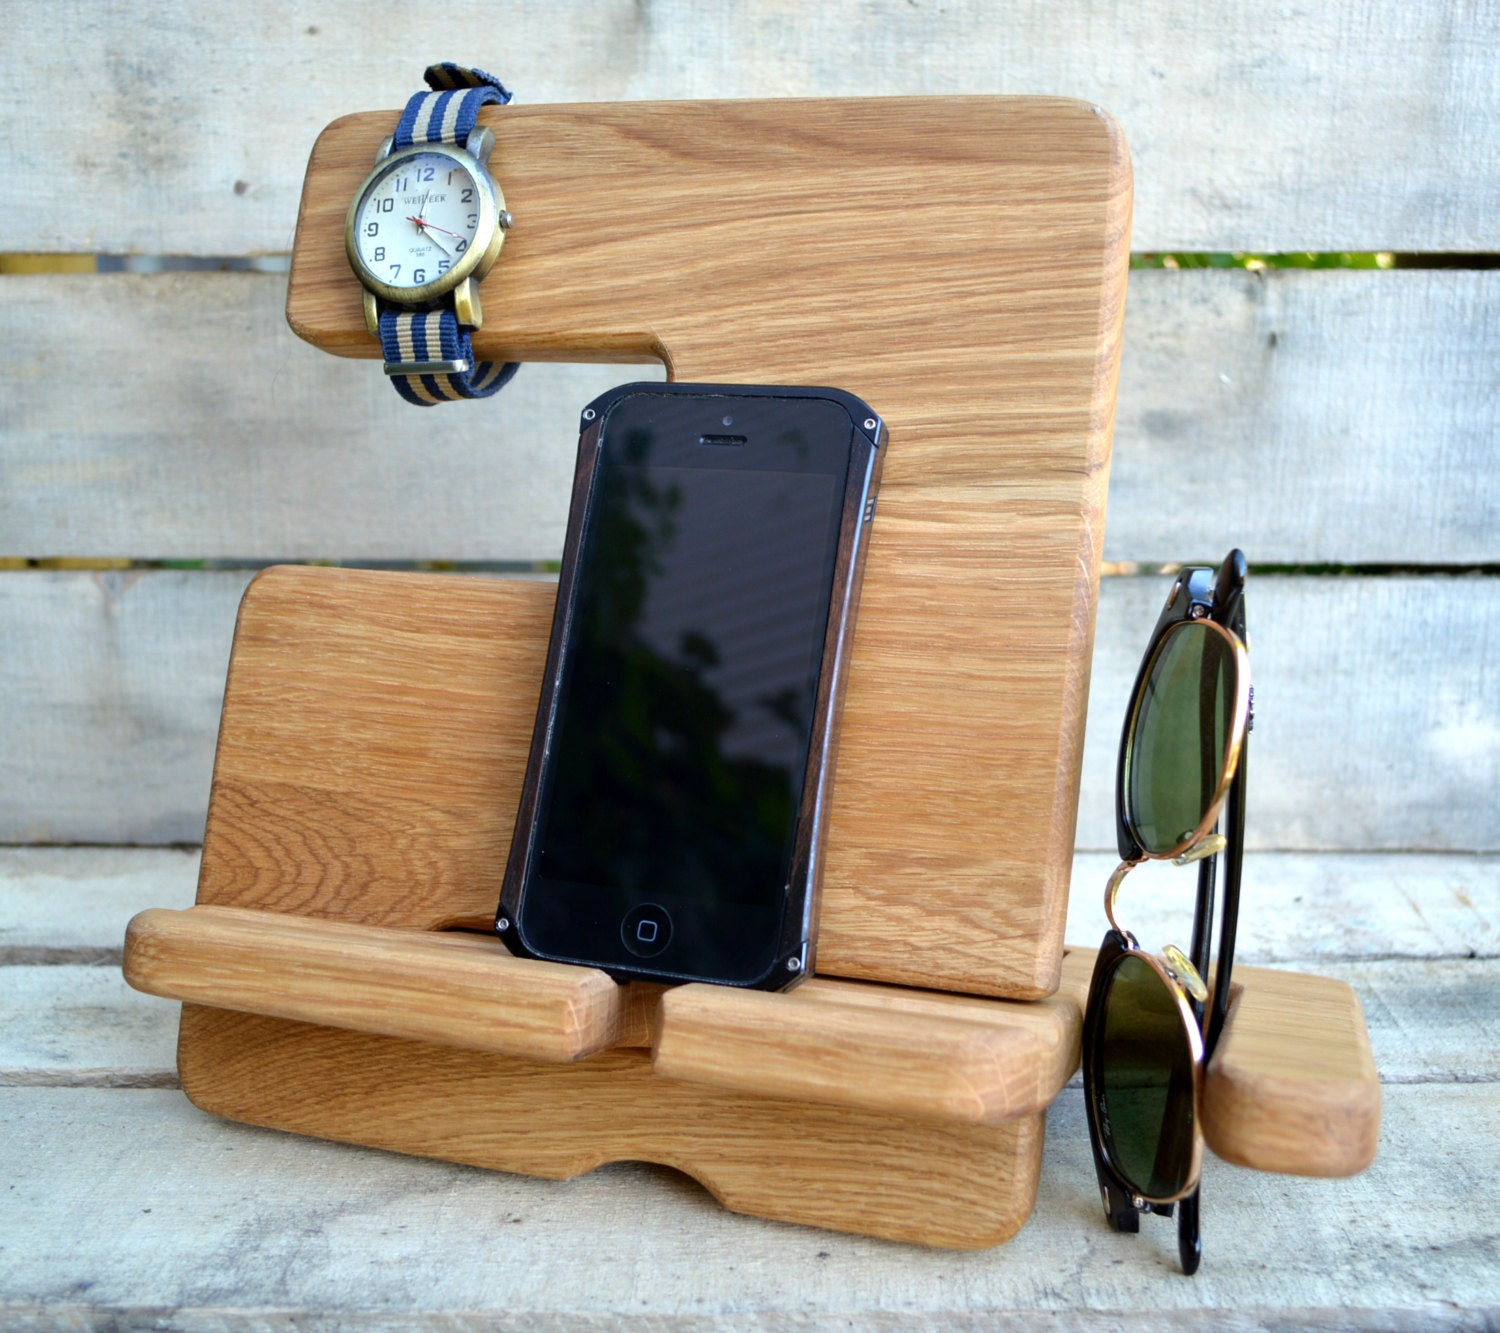 Gifts For Menbirthday Giftsdesk By DesignWoodenGadget On Etsy